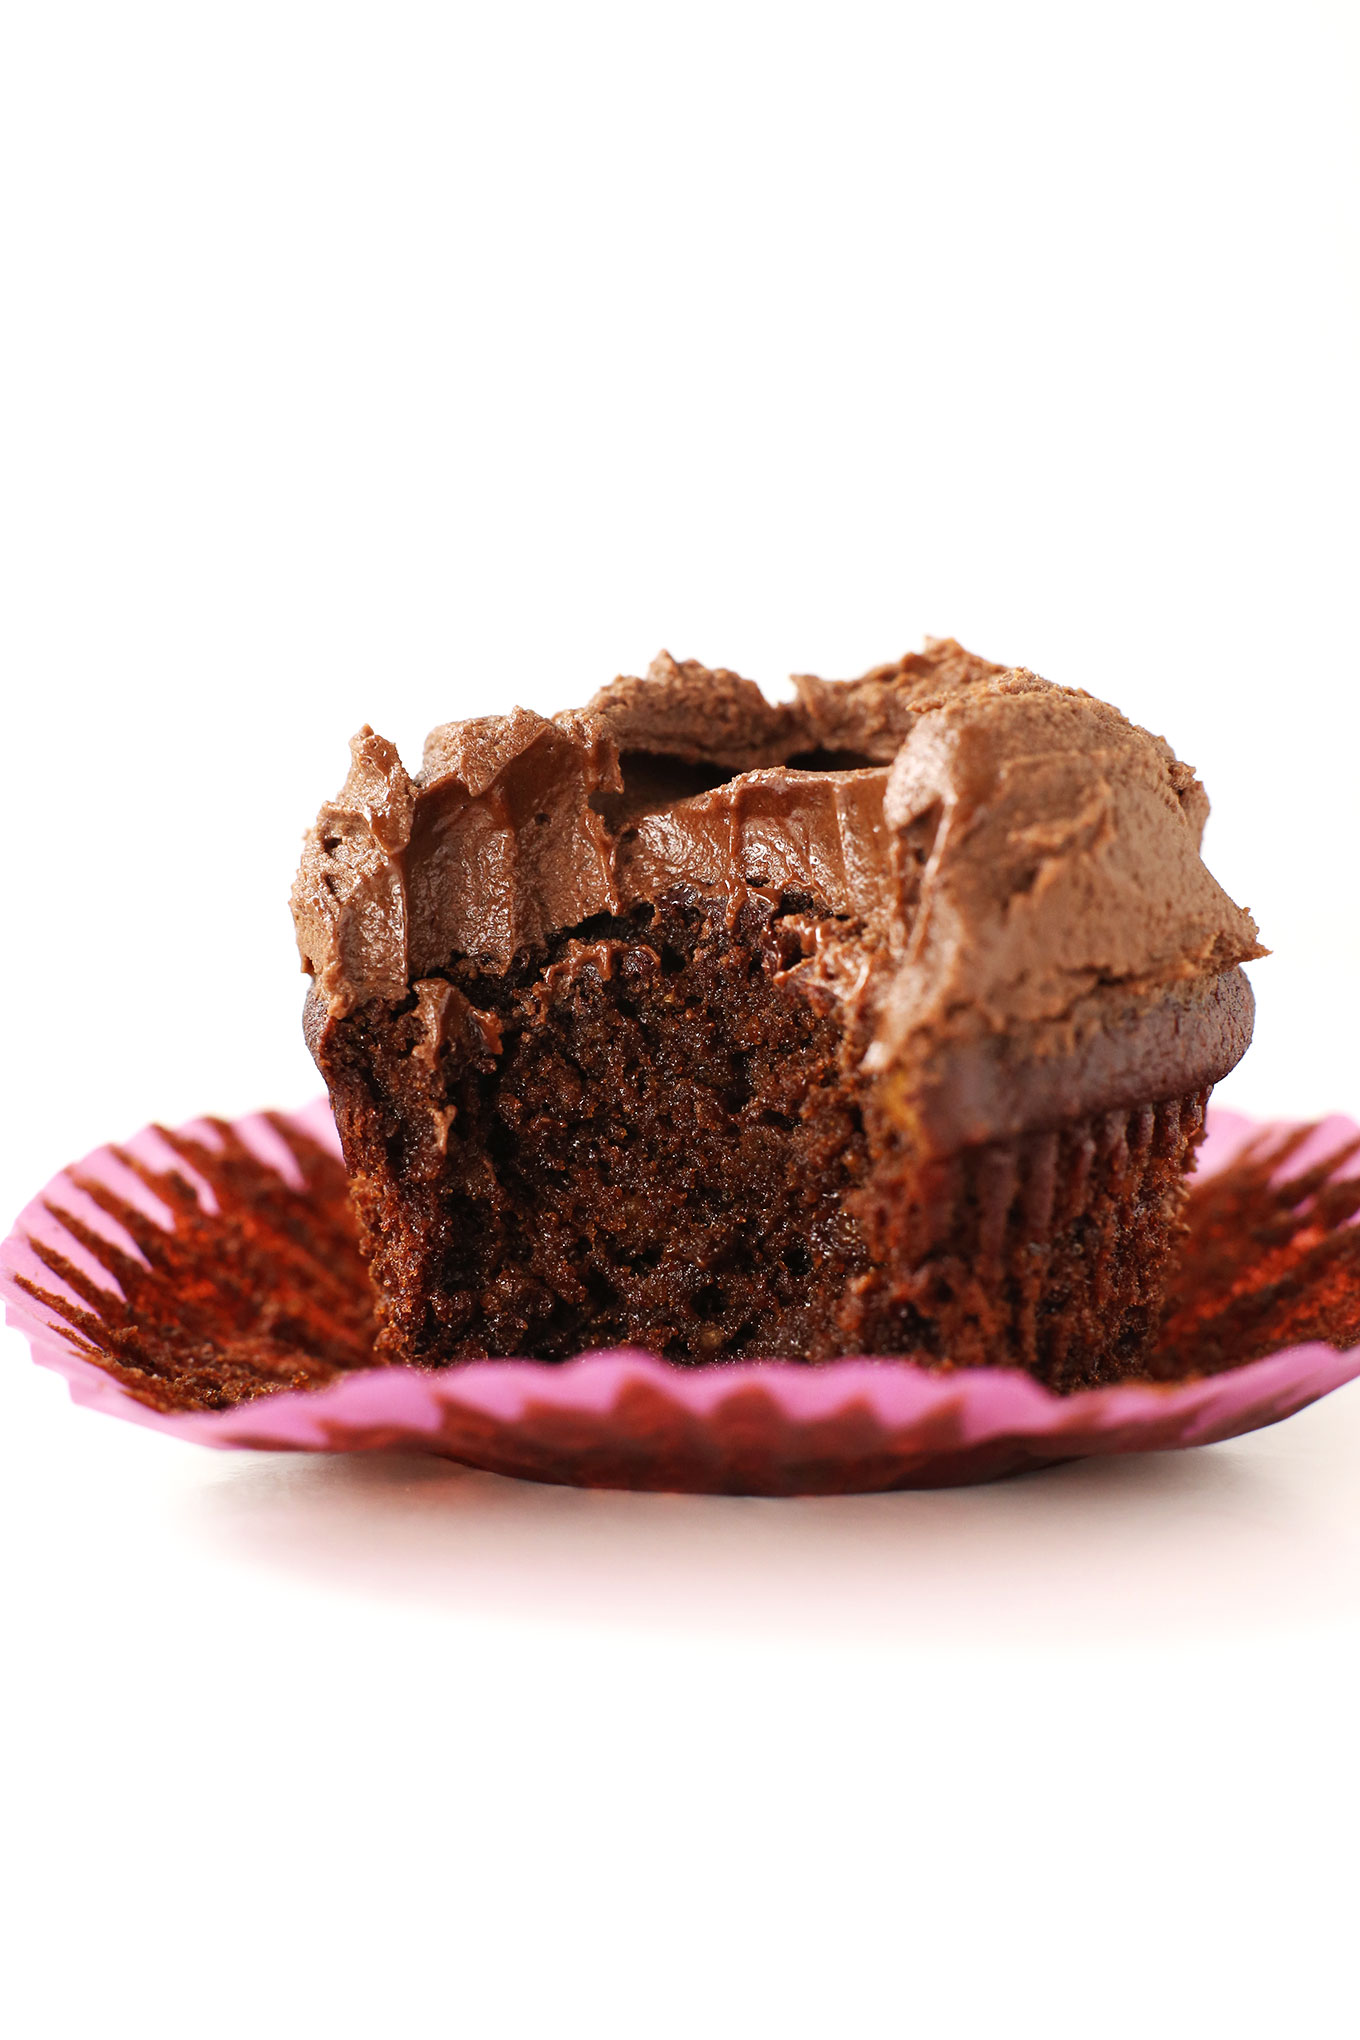 The Best Vegan Gluten-Free Chocolate Cupcake resting on a cupcake wrapper